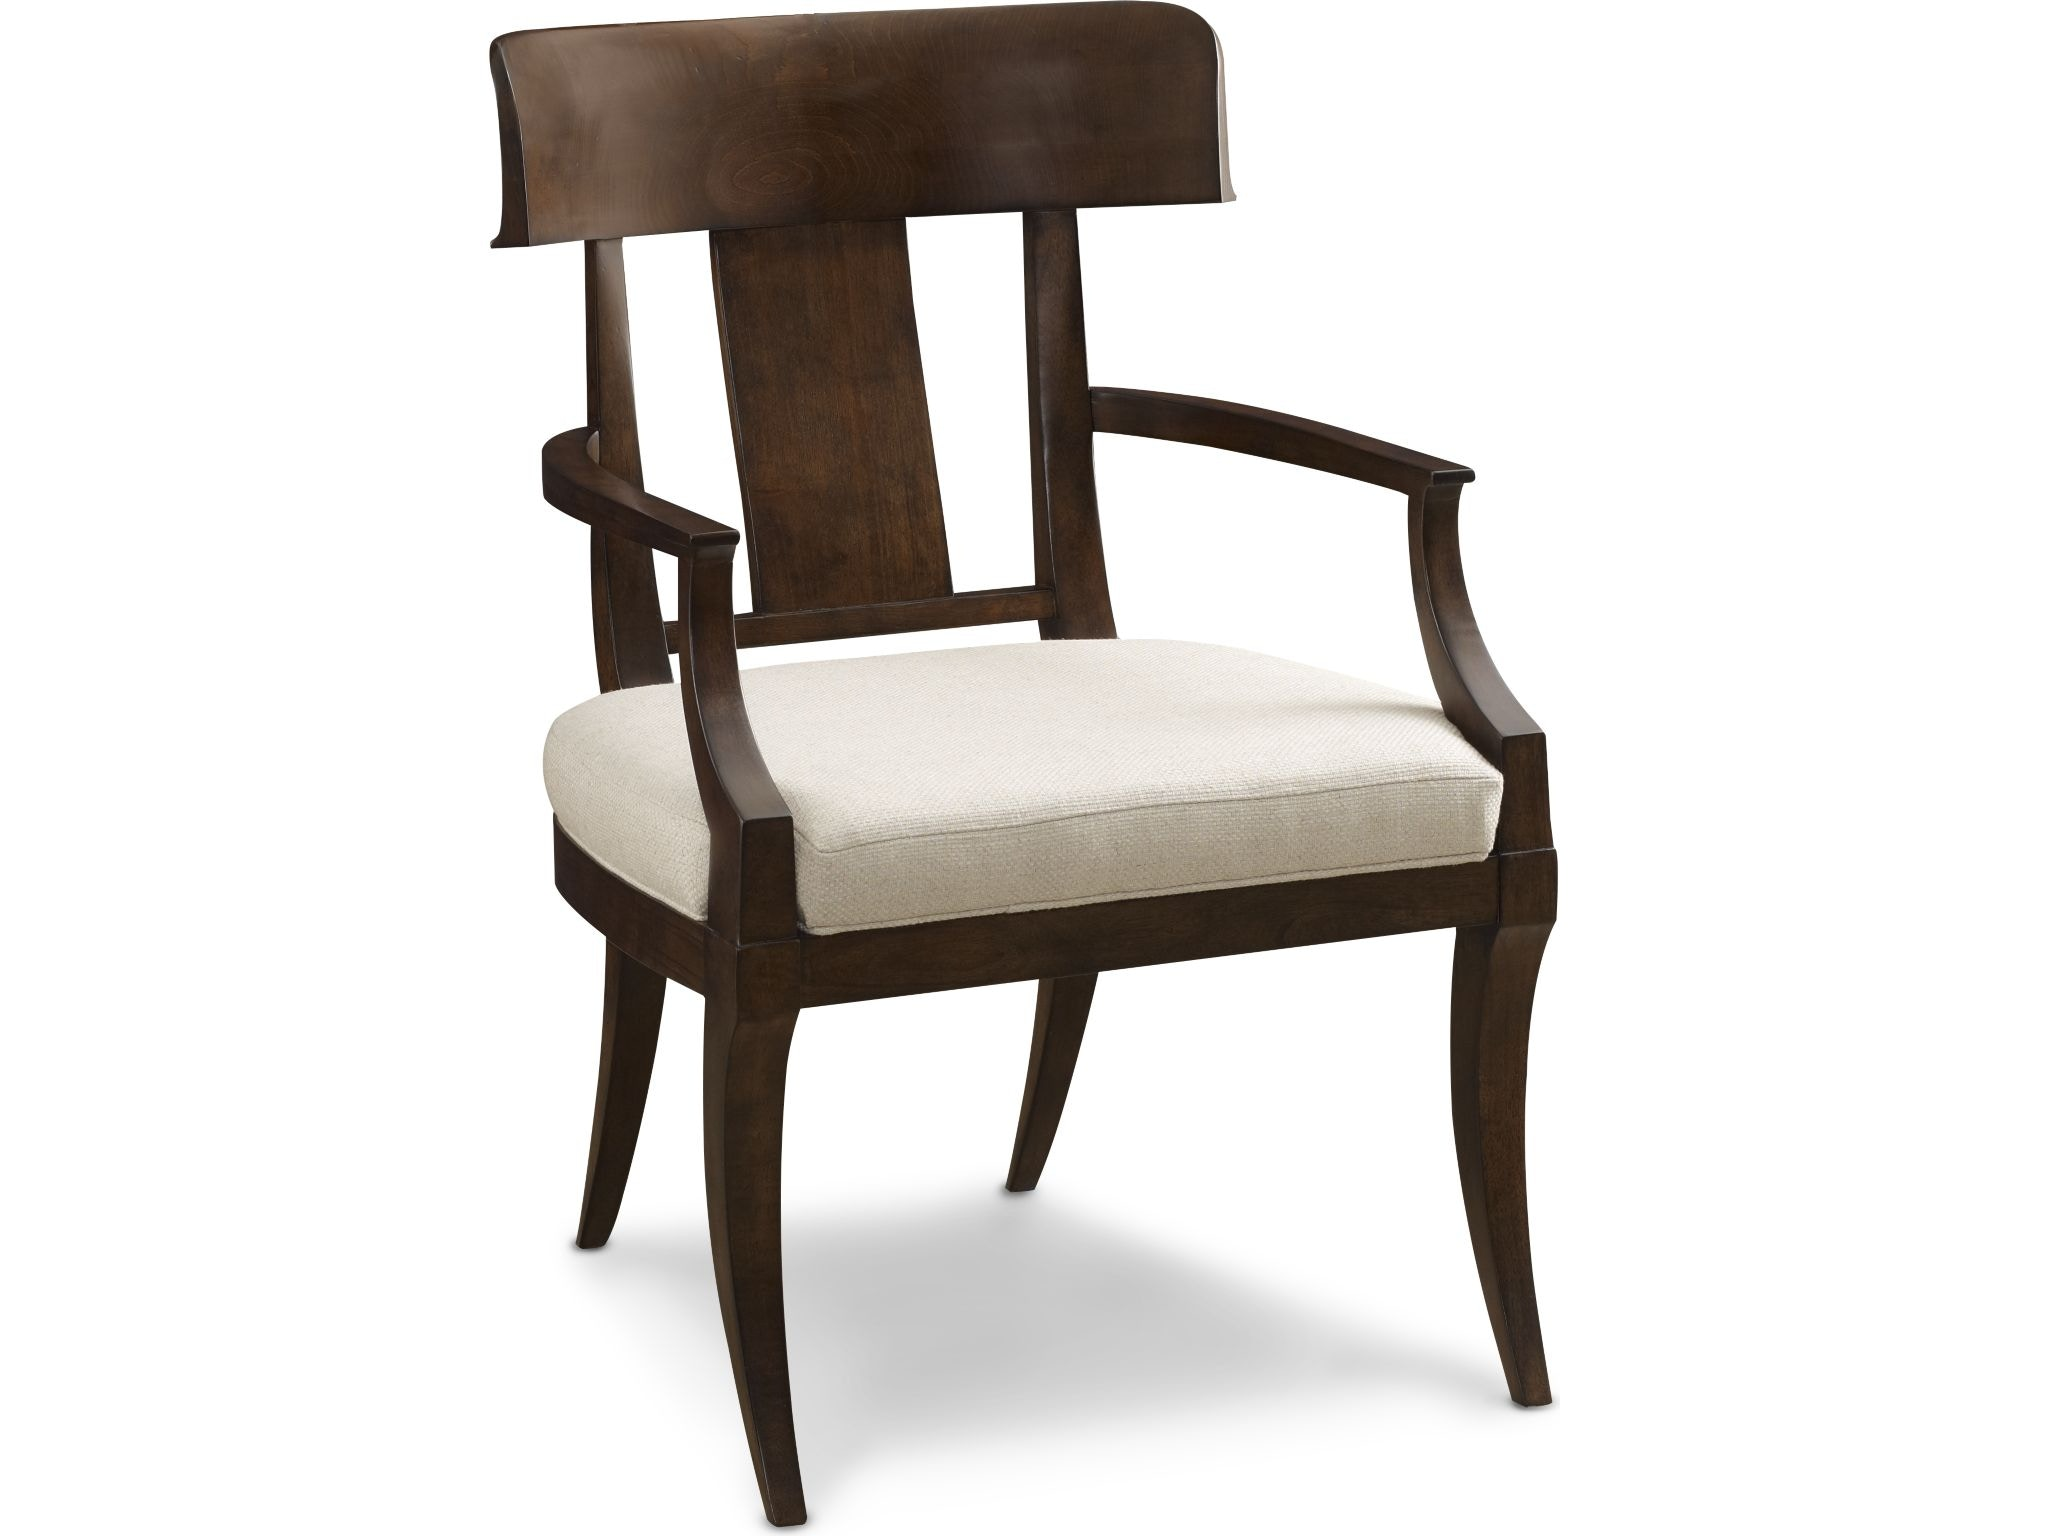 thomasville dining room mykonos arm chair 83421 822 thomasville furniture dining room china 46821 420